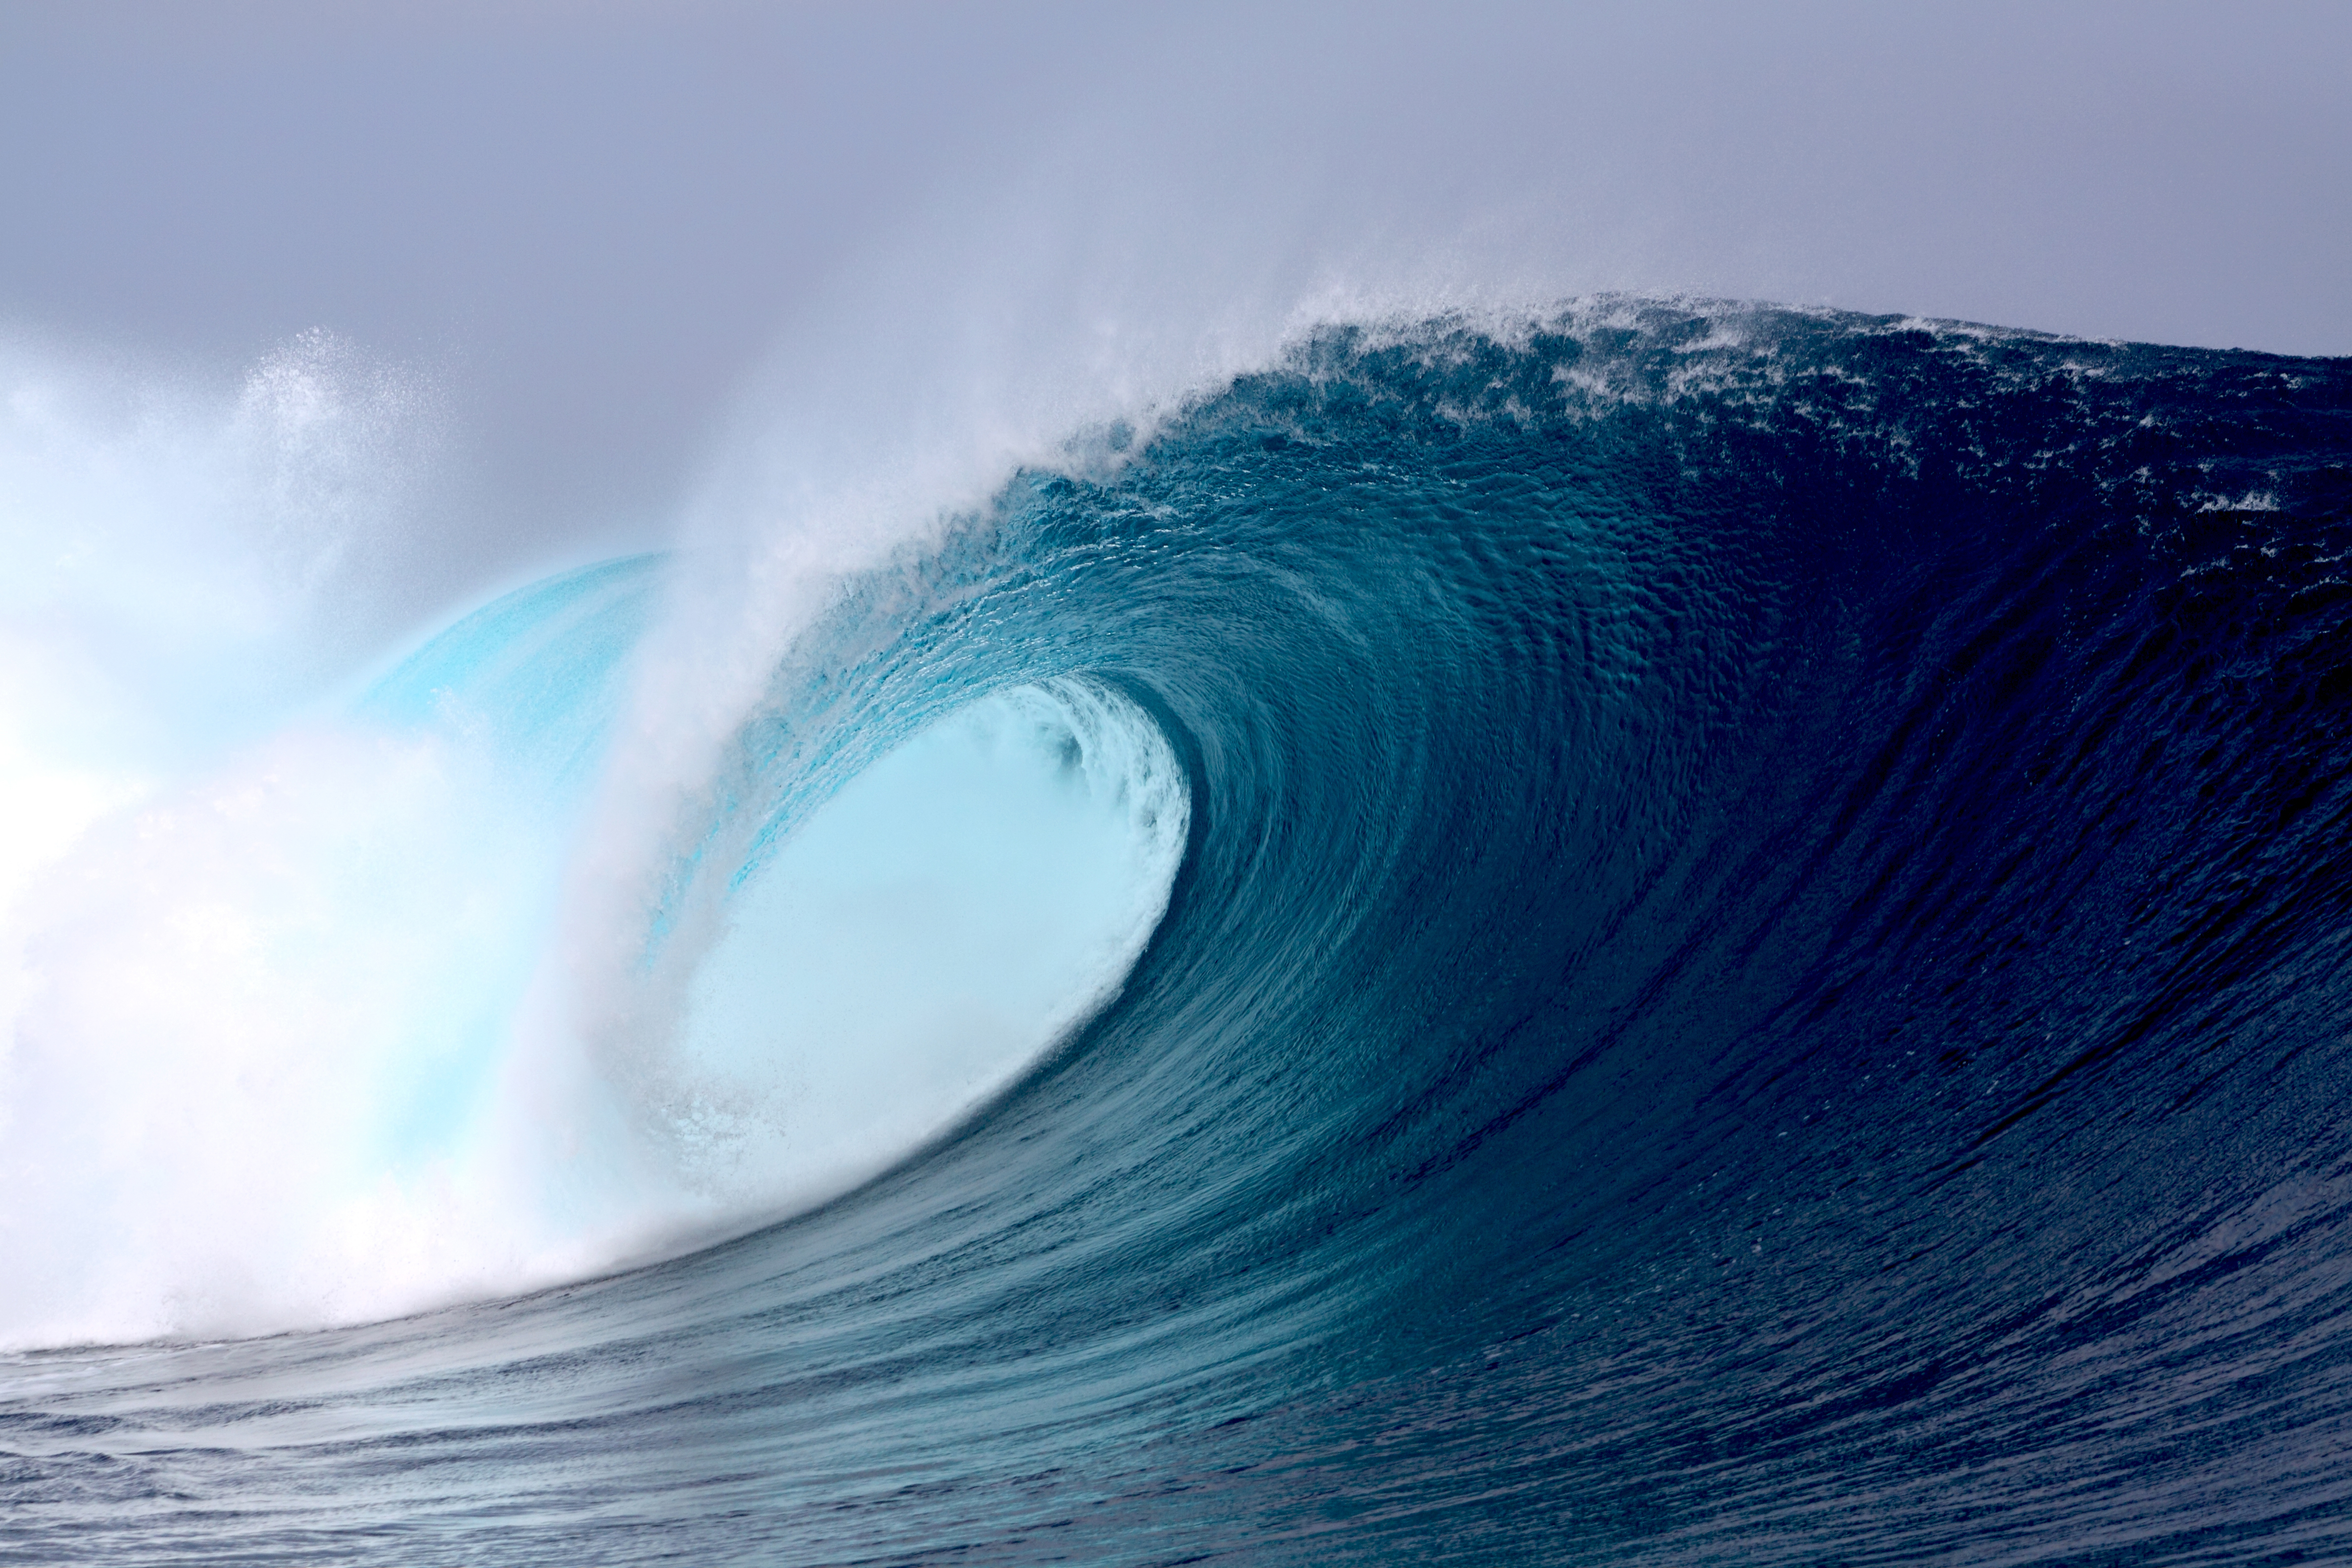 'Freak' ocean waves hit without warning, new research shows